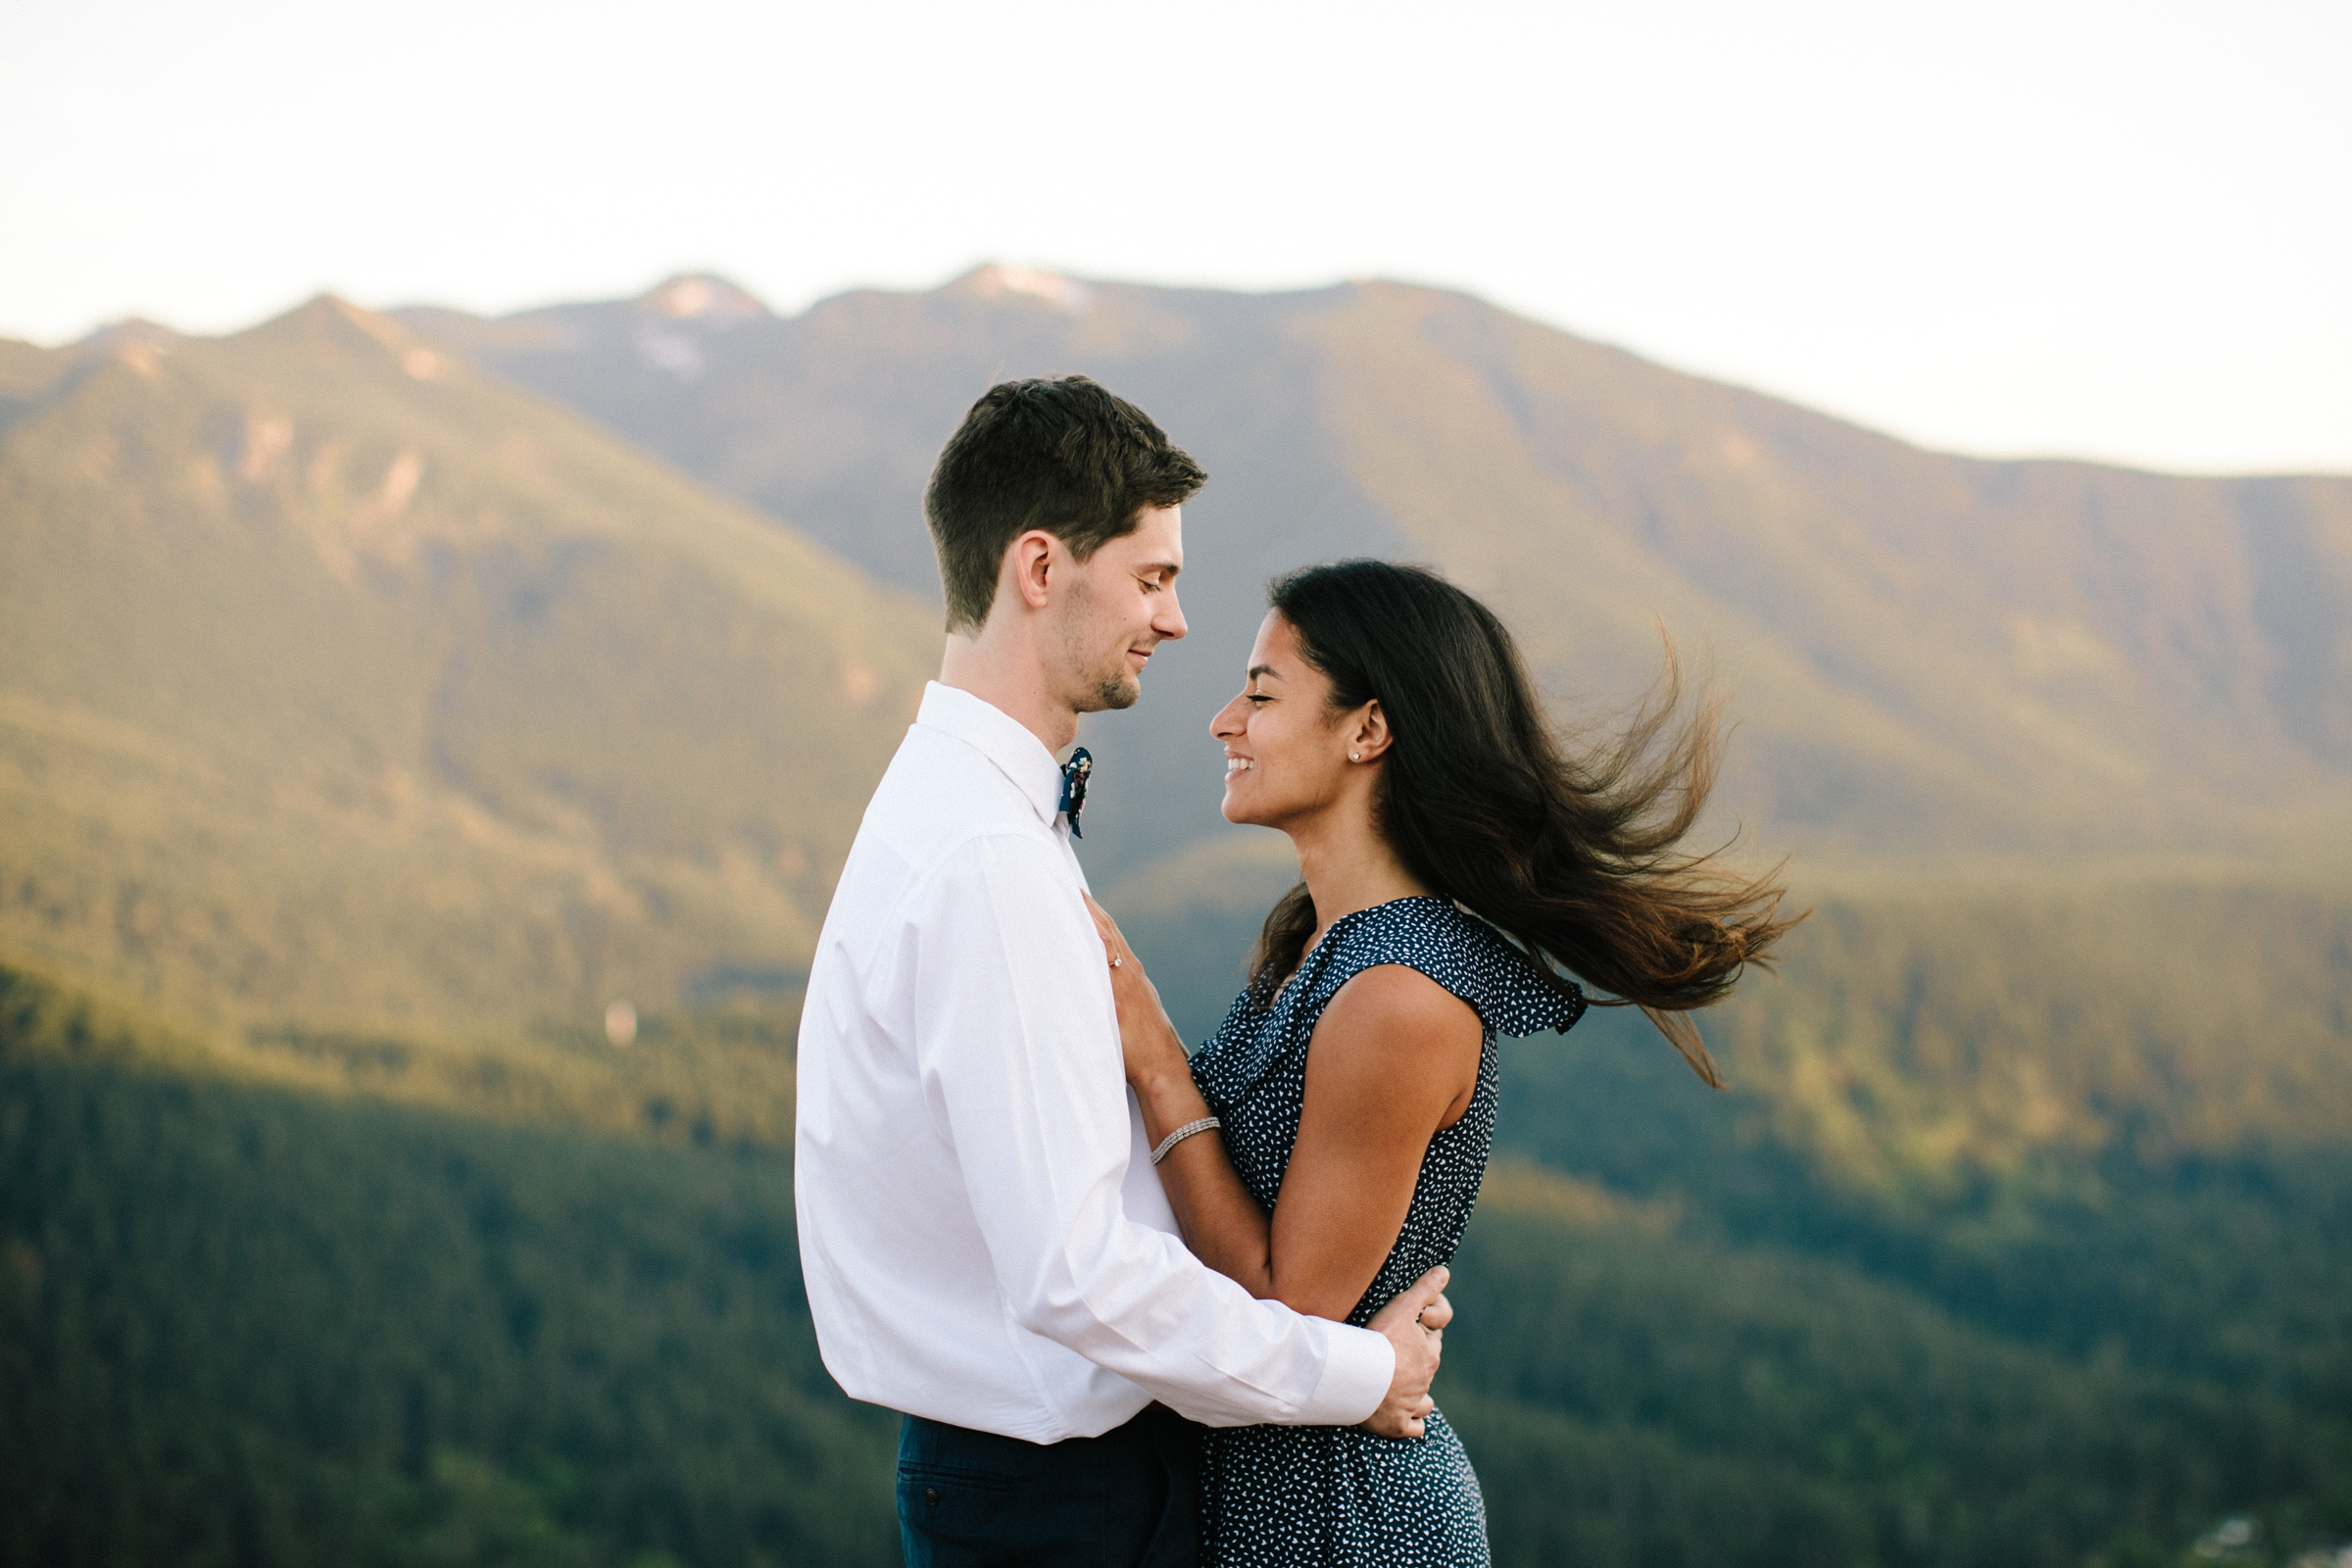 adventure-mountain-top-elopement-photographer-pnw-seattle-washington-wedding-engagement-hike-photography-catie-bergman_0022.jpg